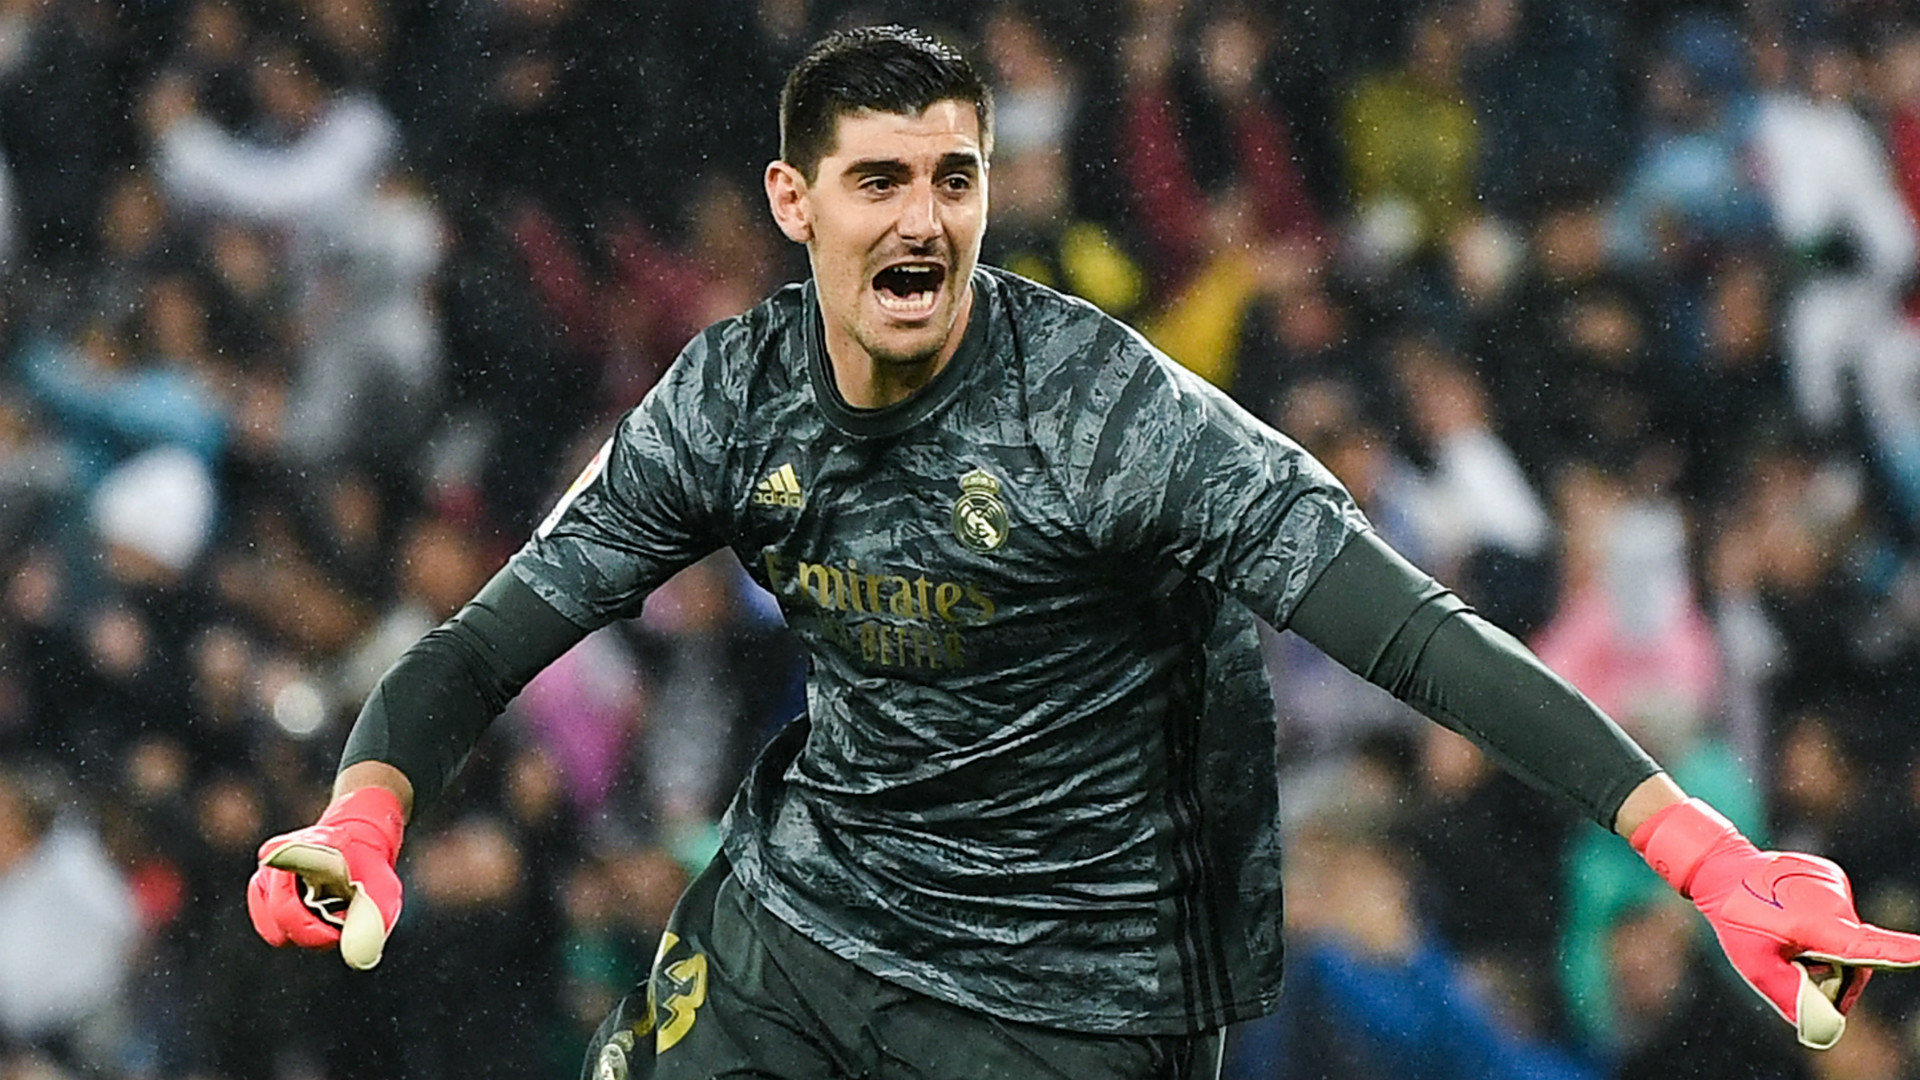 Courtois: Barcelona shouldn't be made La Liga champions - Real Madrid were better